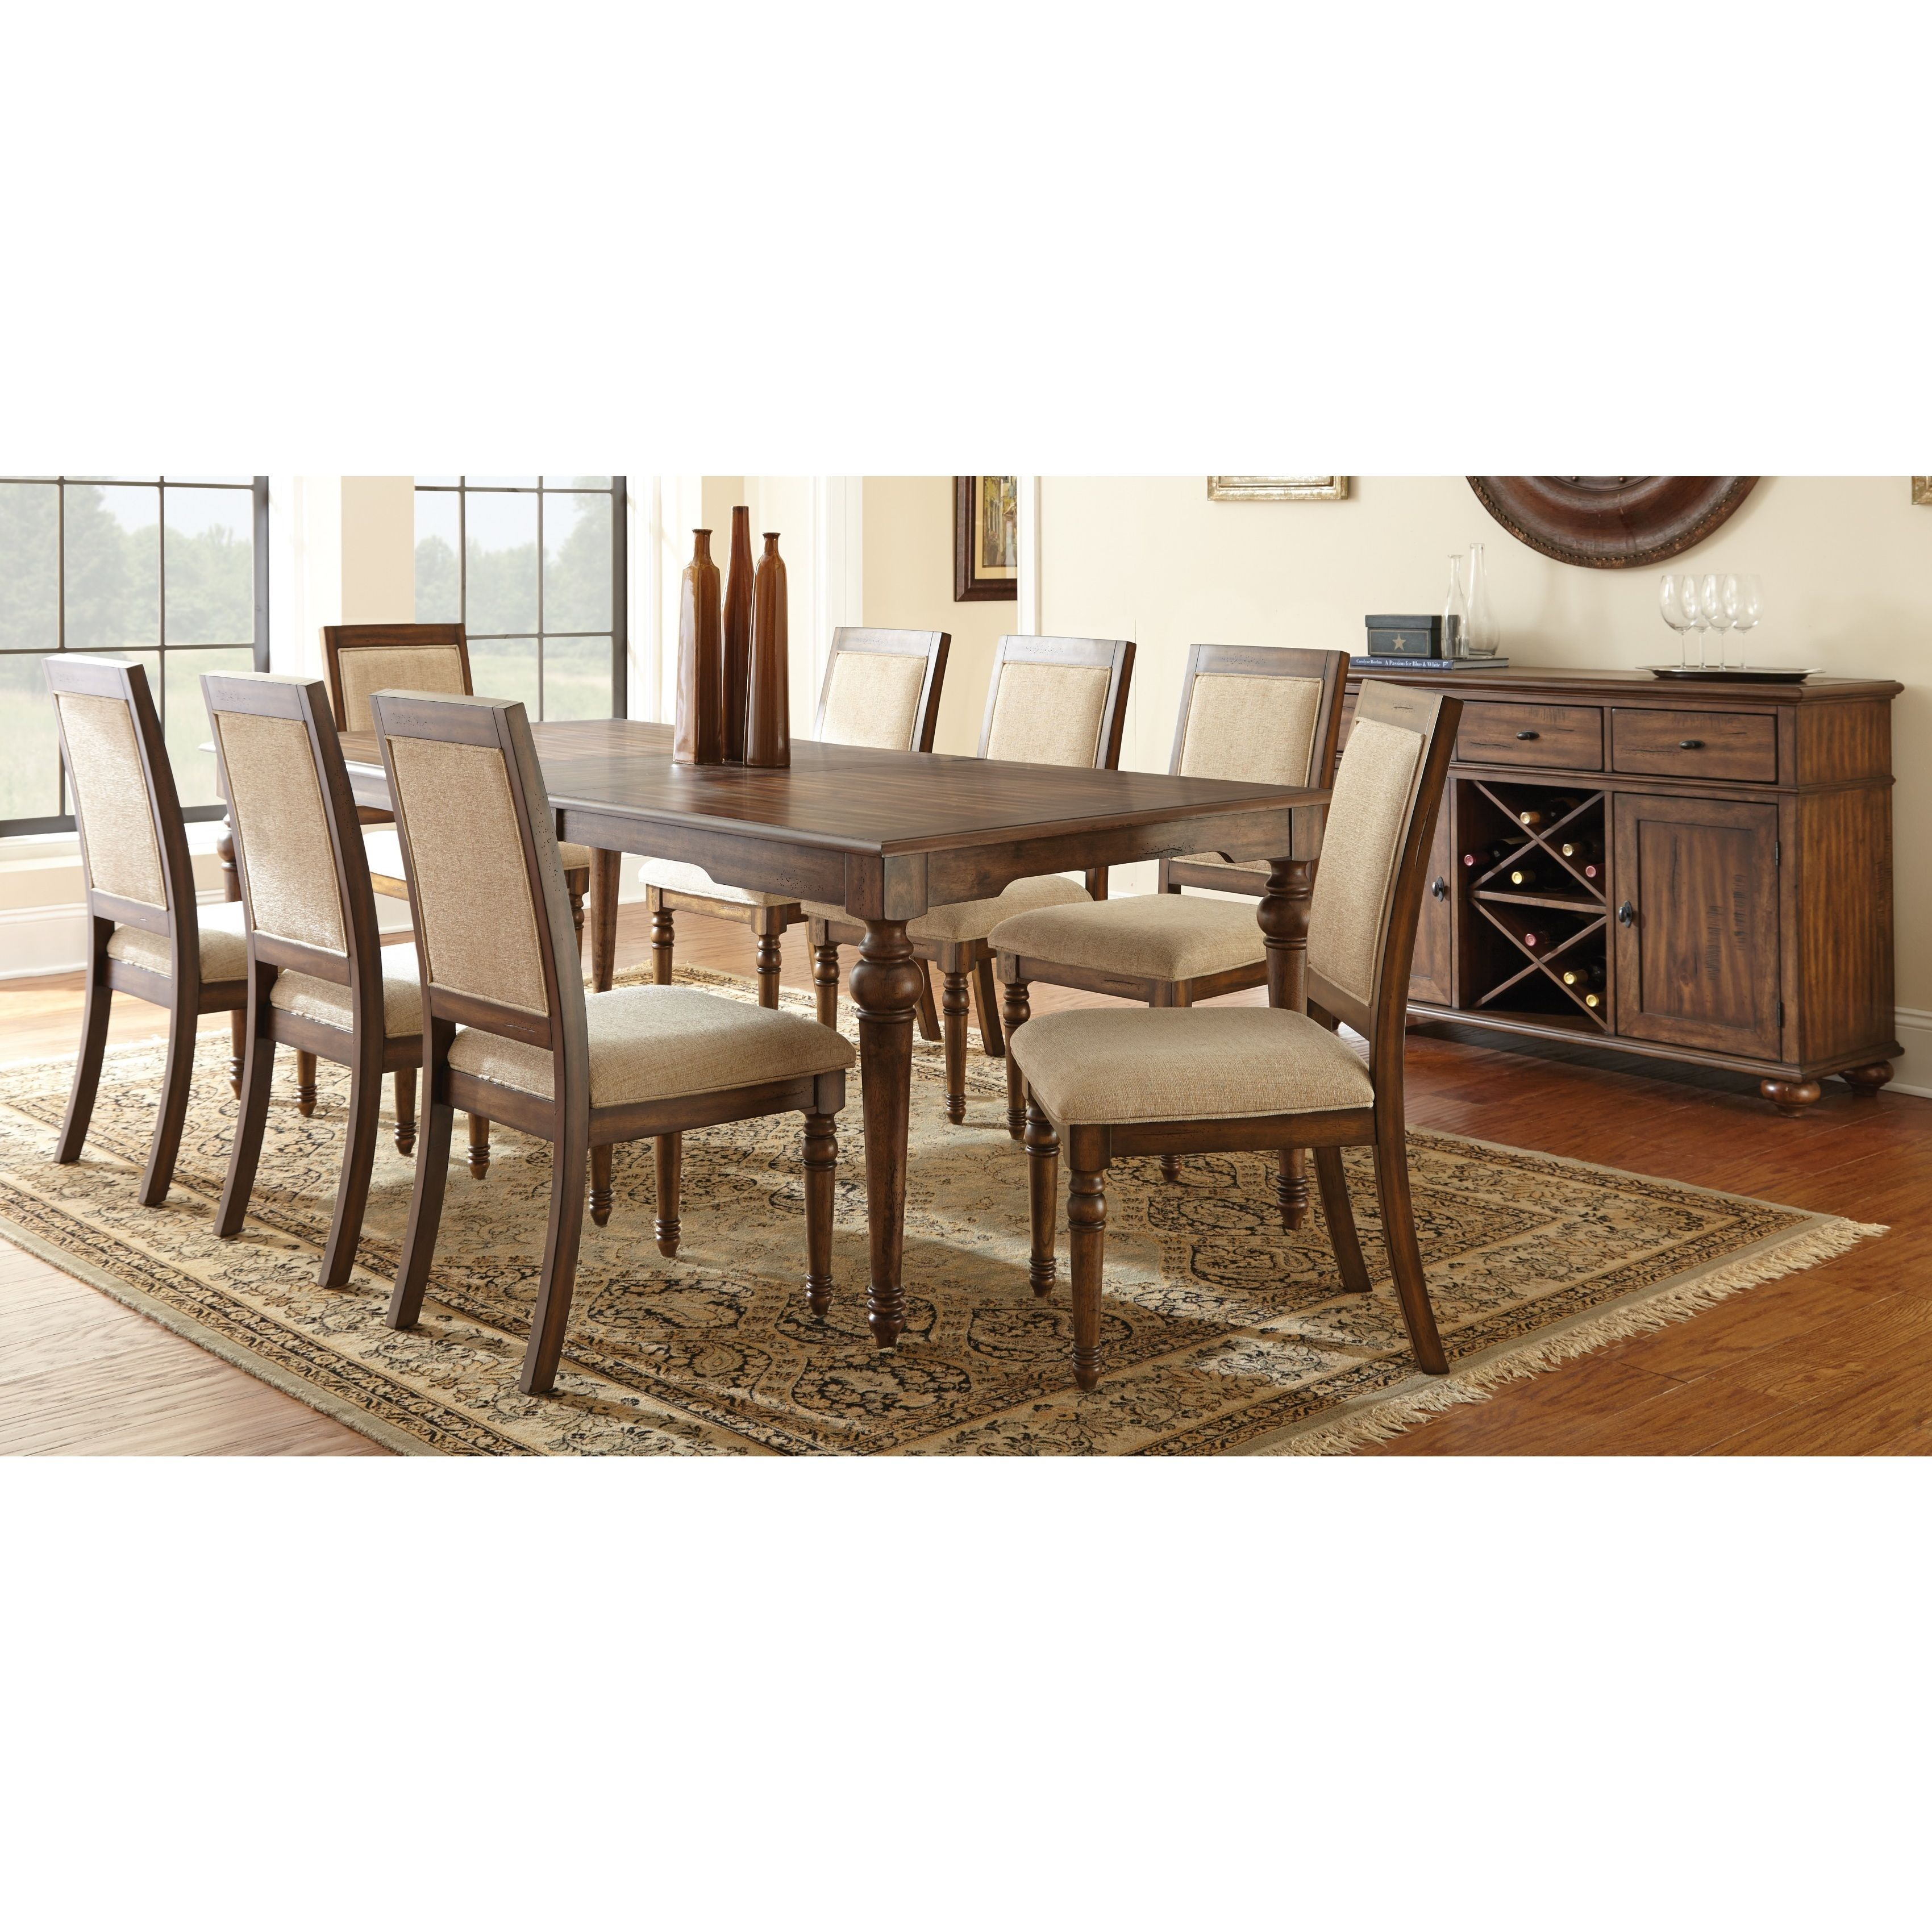 Update Your Dining Room With The Beautiful Robyn Collection Finished In Warm Brown